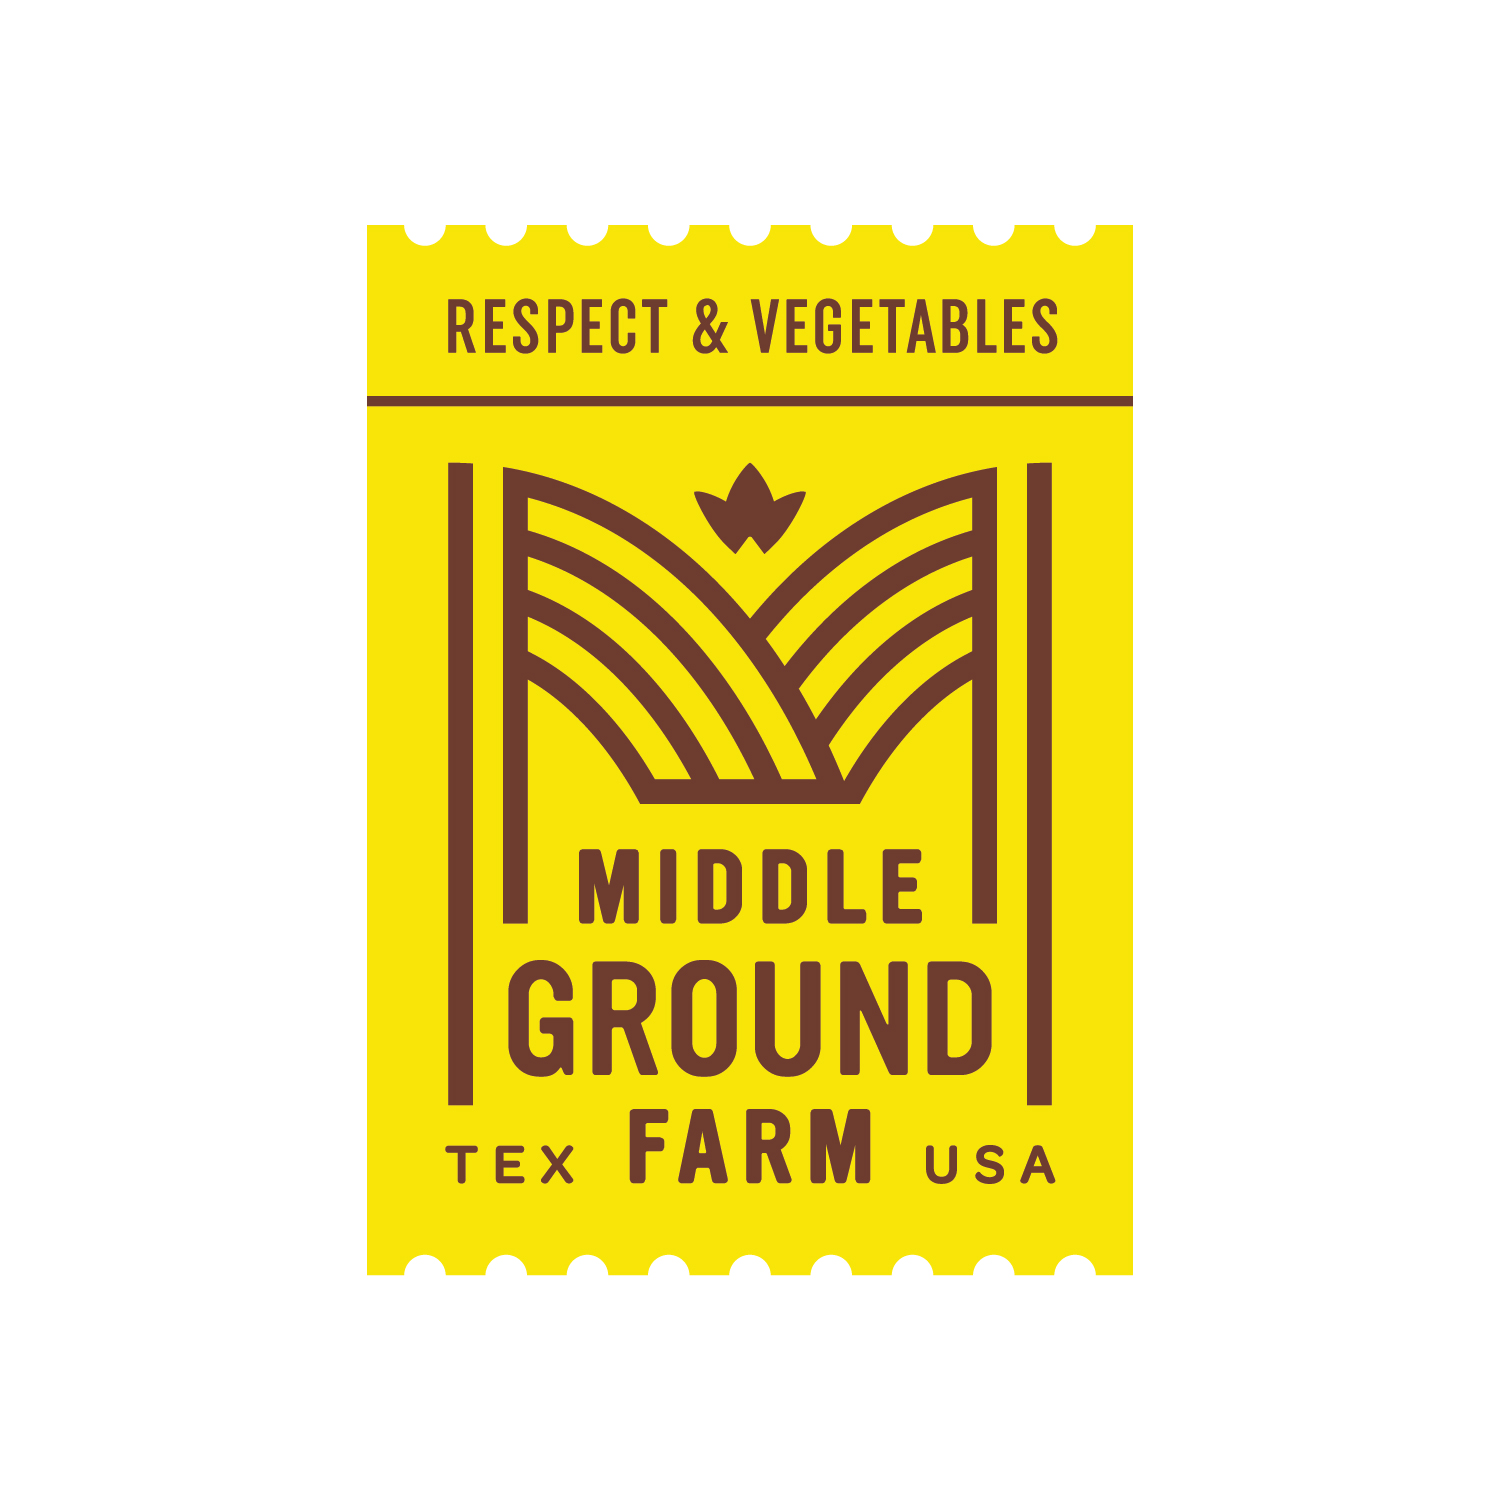 Middle Ground Farm